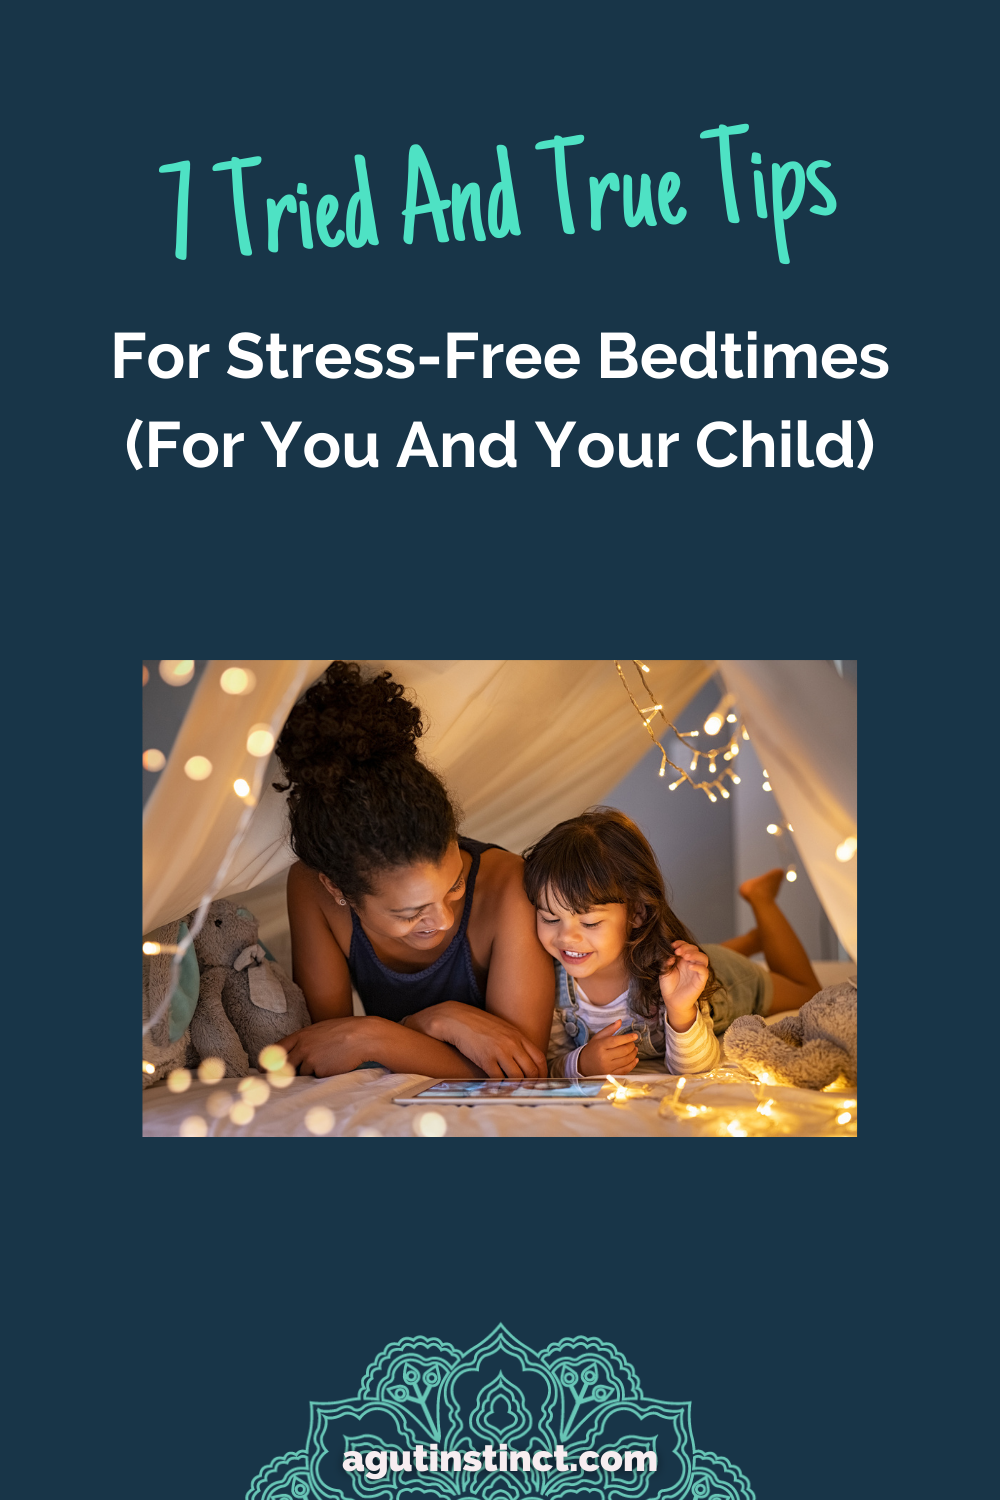 a mother and her daughter lying on their bellies next to each other inside a blanket fort, surrounded by a string of white lights representing a happy and calm bedtime routine for bedtimes without stress or tears or tantrums